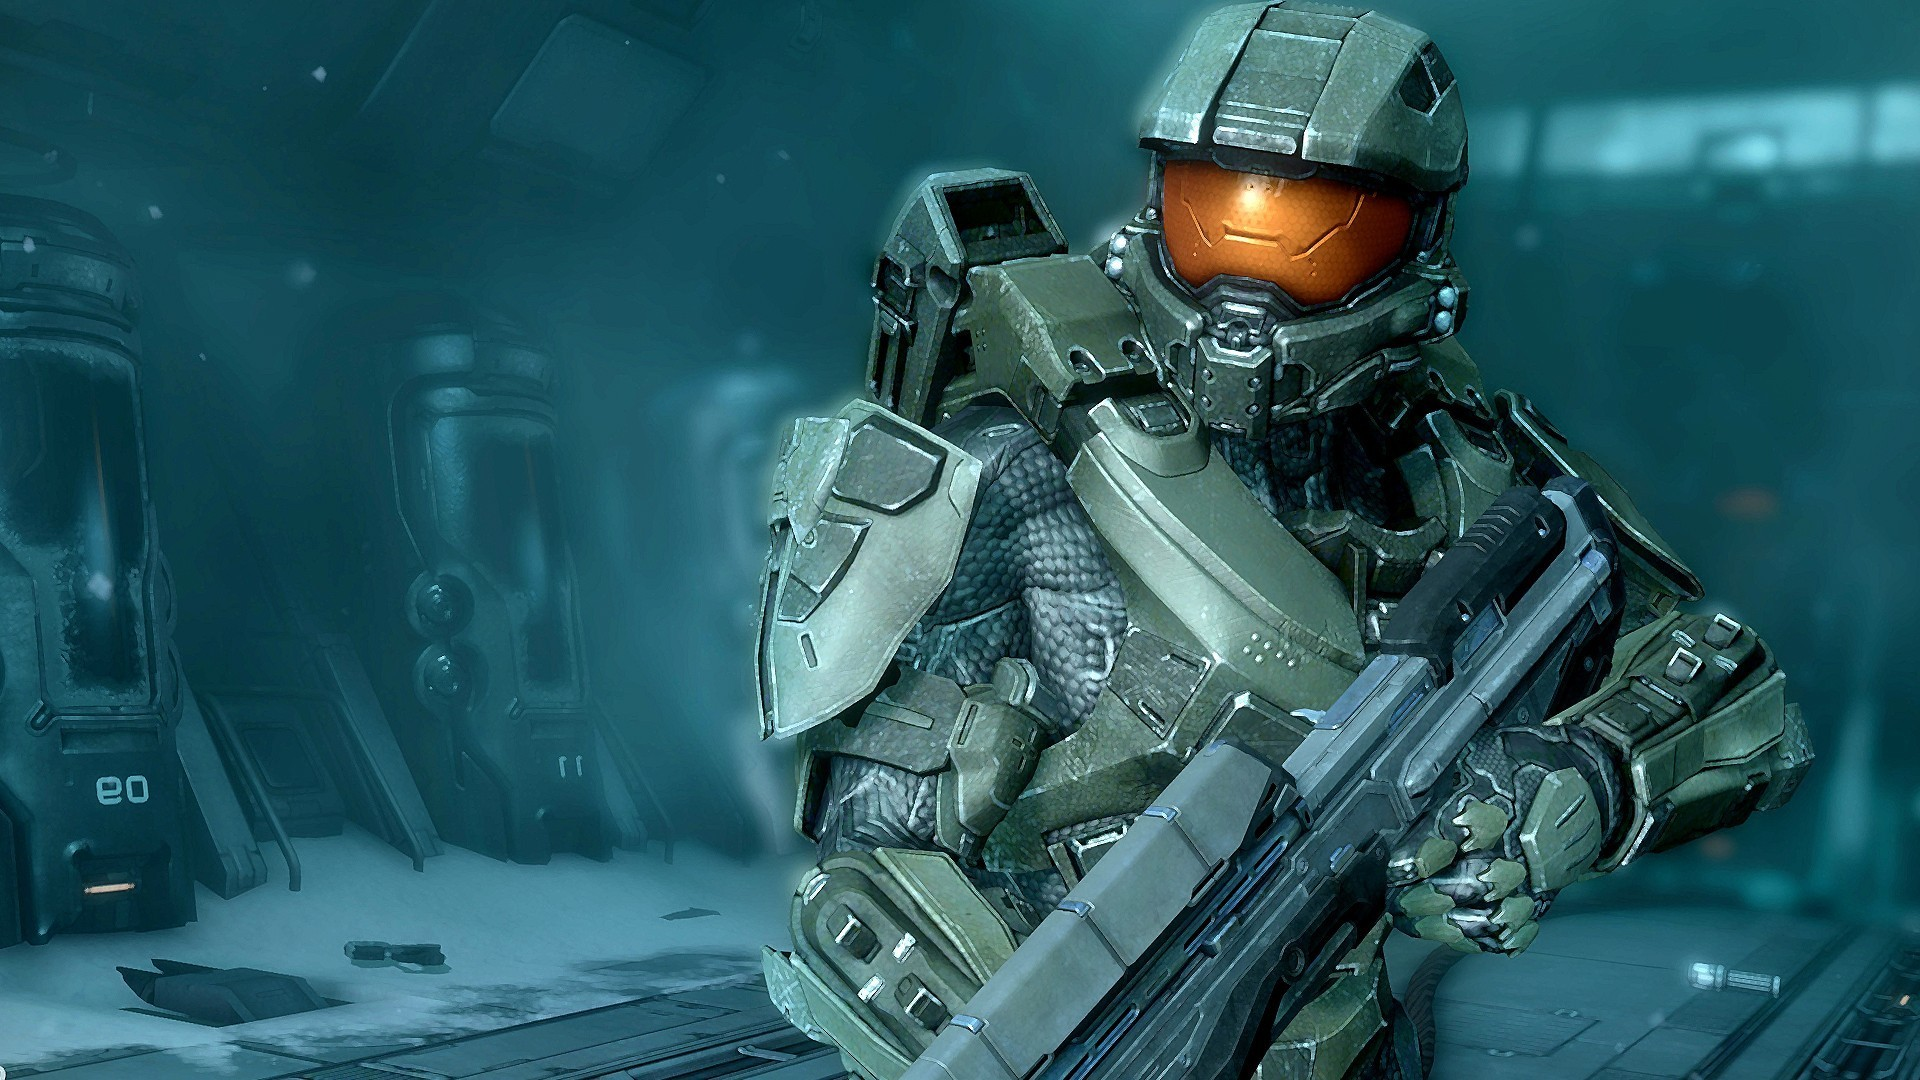 1920x1080 Halo Wallpapers Wallpaper 1920×1200 Halo 4 Wallpapers HD (51 Wallpapers) |  Adorable · Master ChiefHd ...